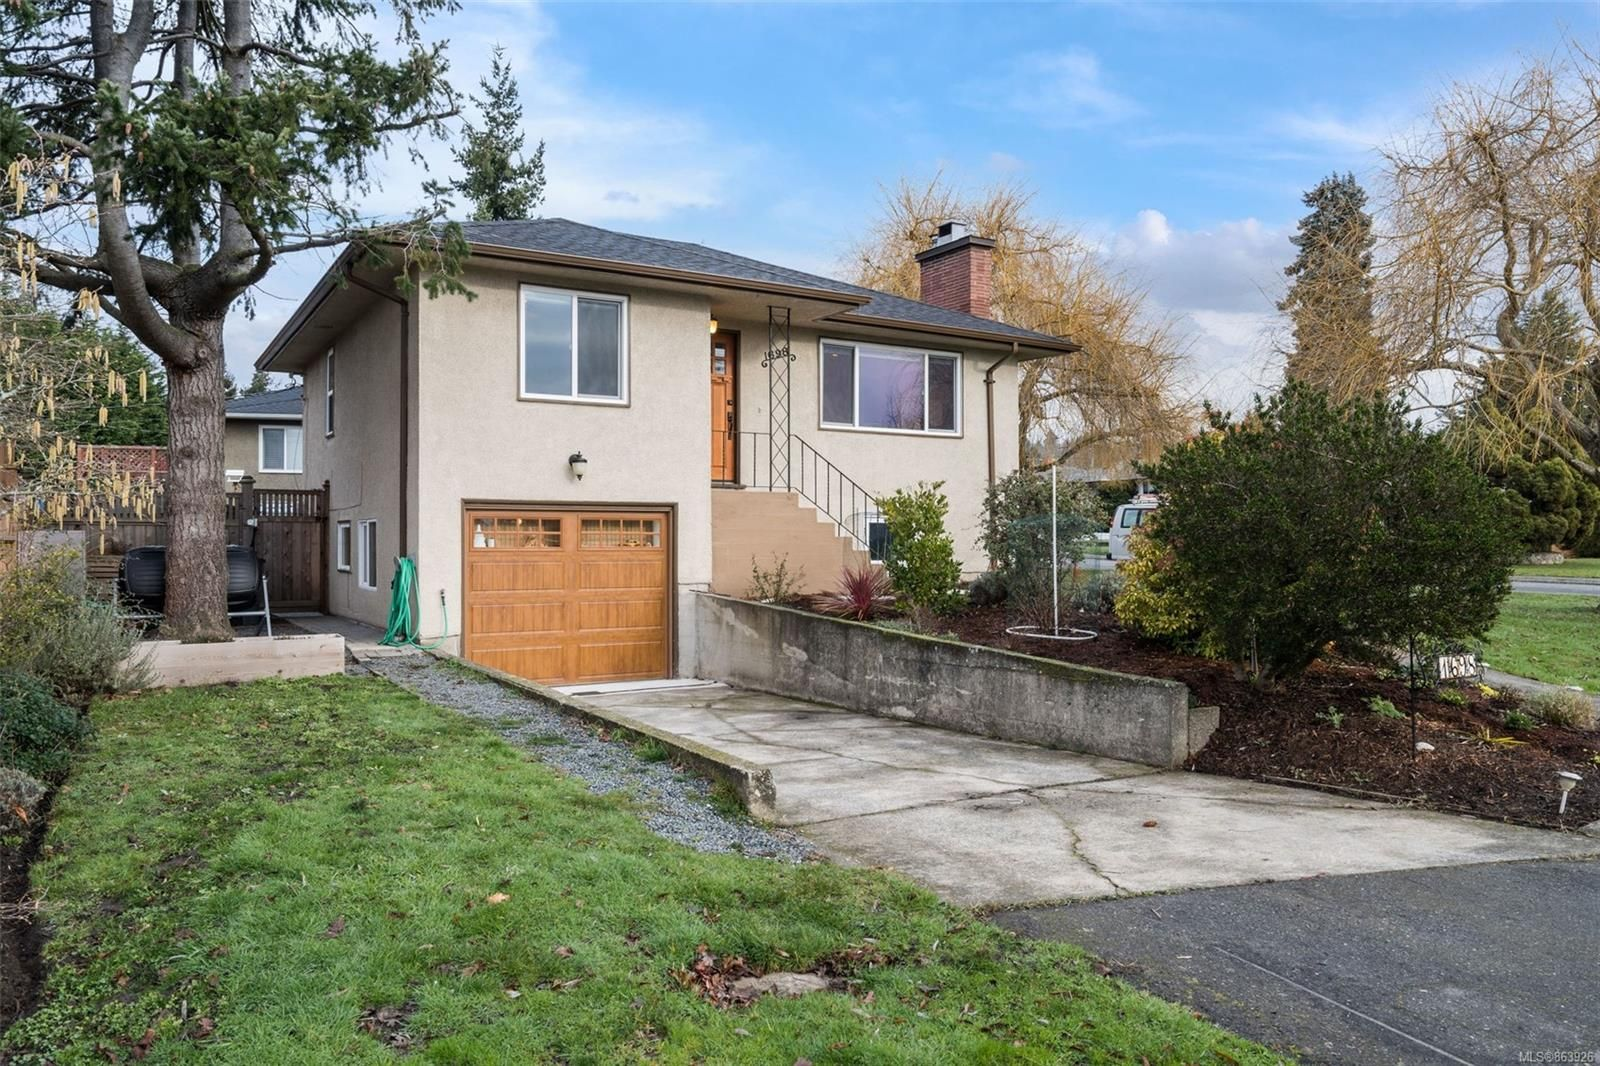 Main Photo: 1698 North Dairy Rd in : SE Camosun House for sale (Saanich East)  : MLS®# 863926